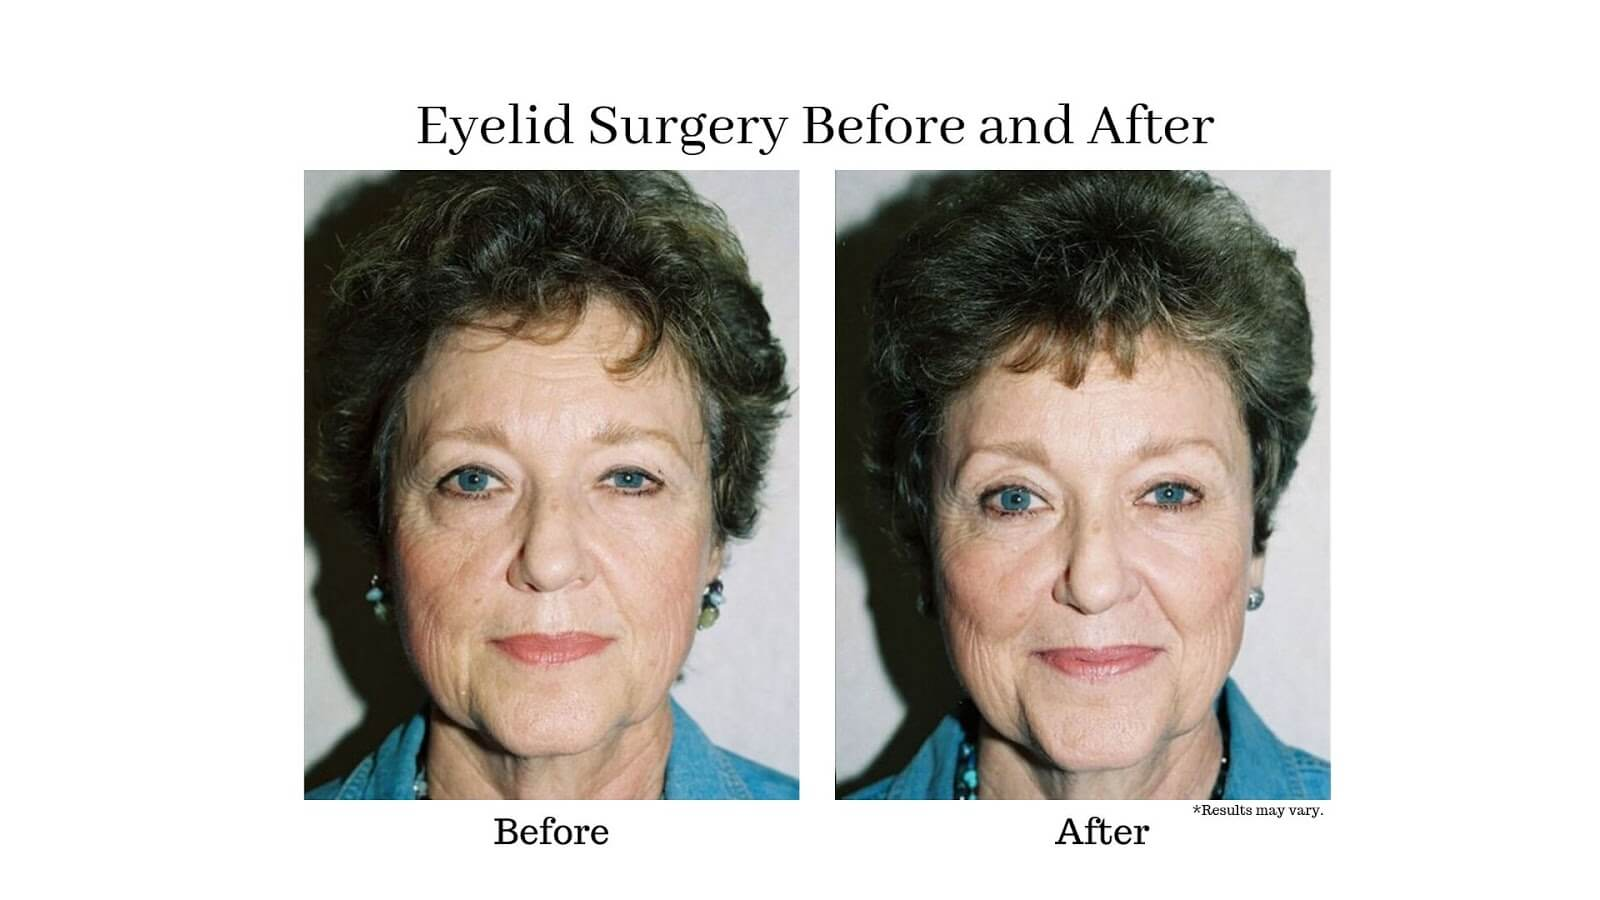 A woman before and after her eyelid surgery. Her eyes are brighter and more lively after removing excess tissue.